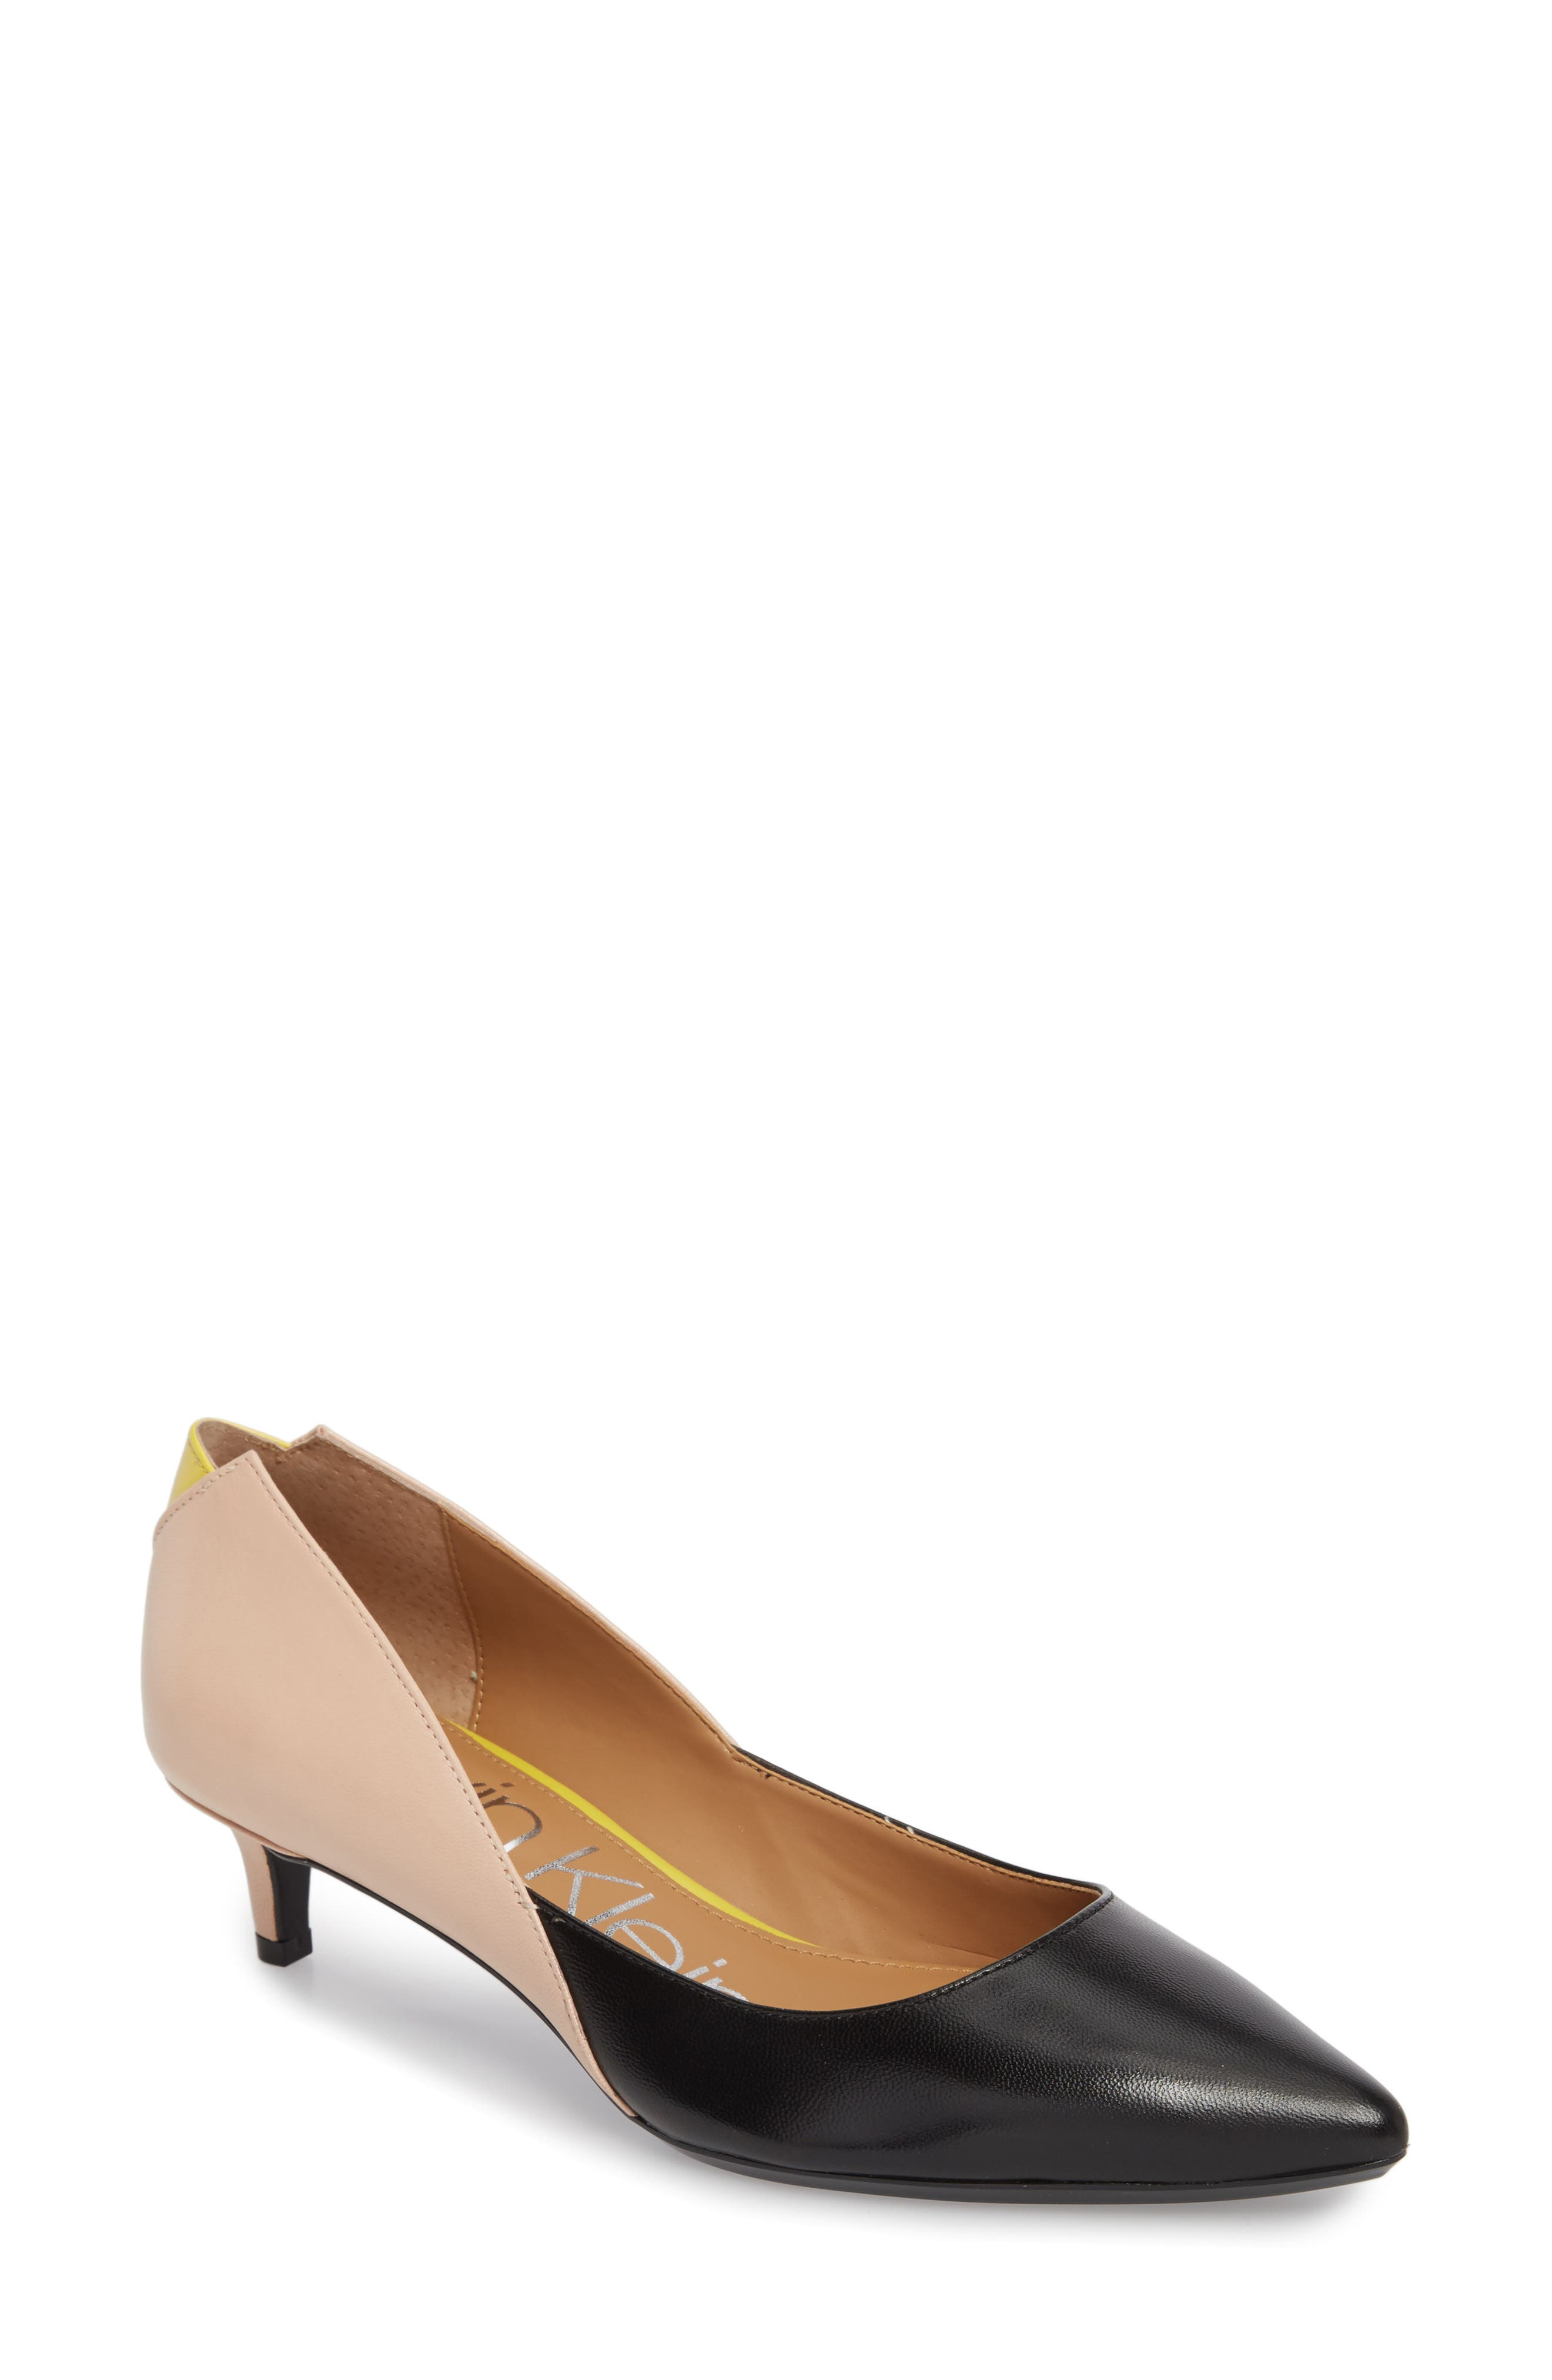 Grayce Pointy Toe Pump,                         Main,                         color, 002